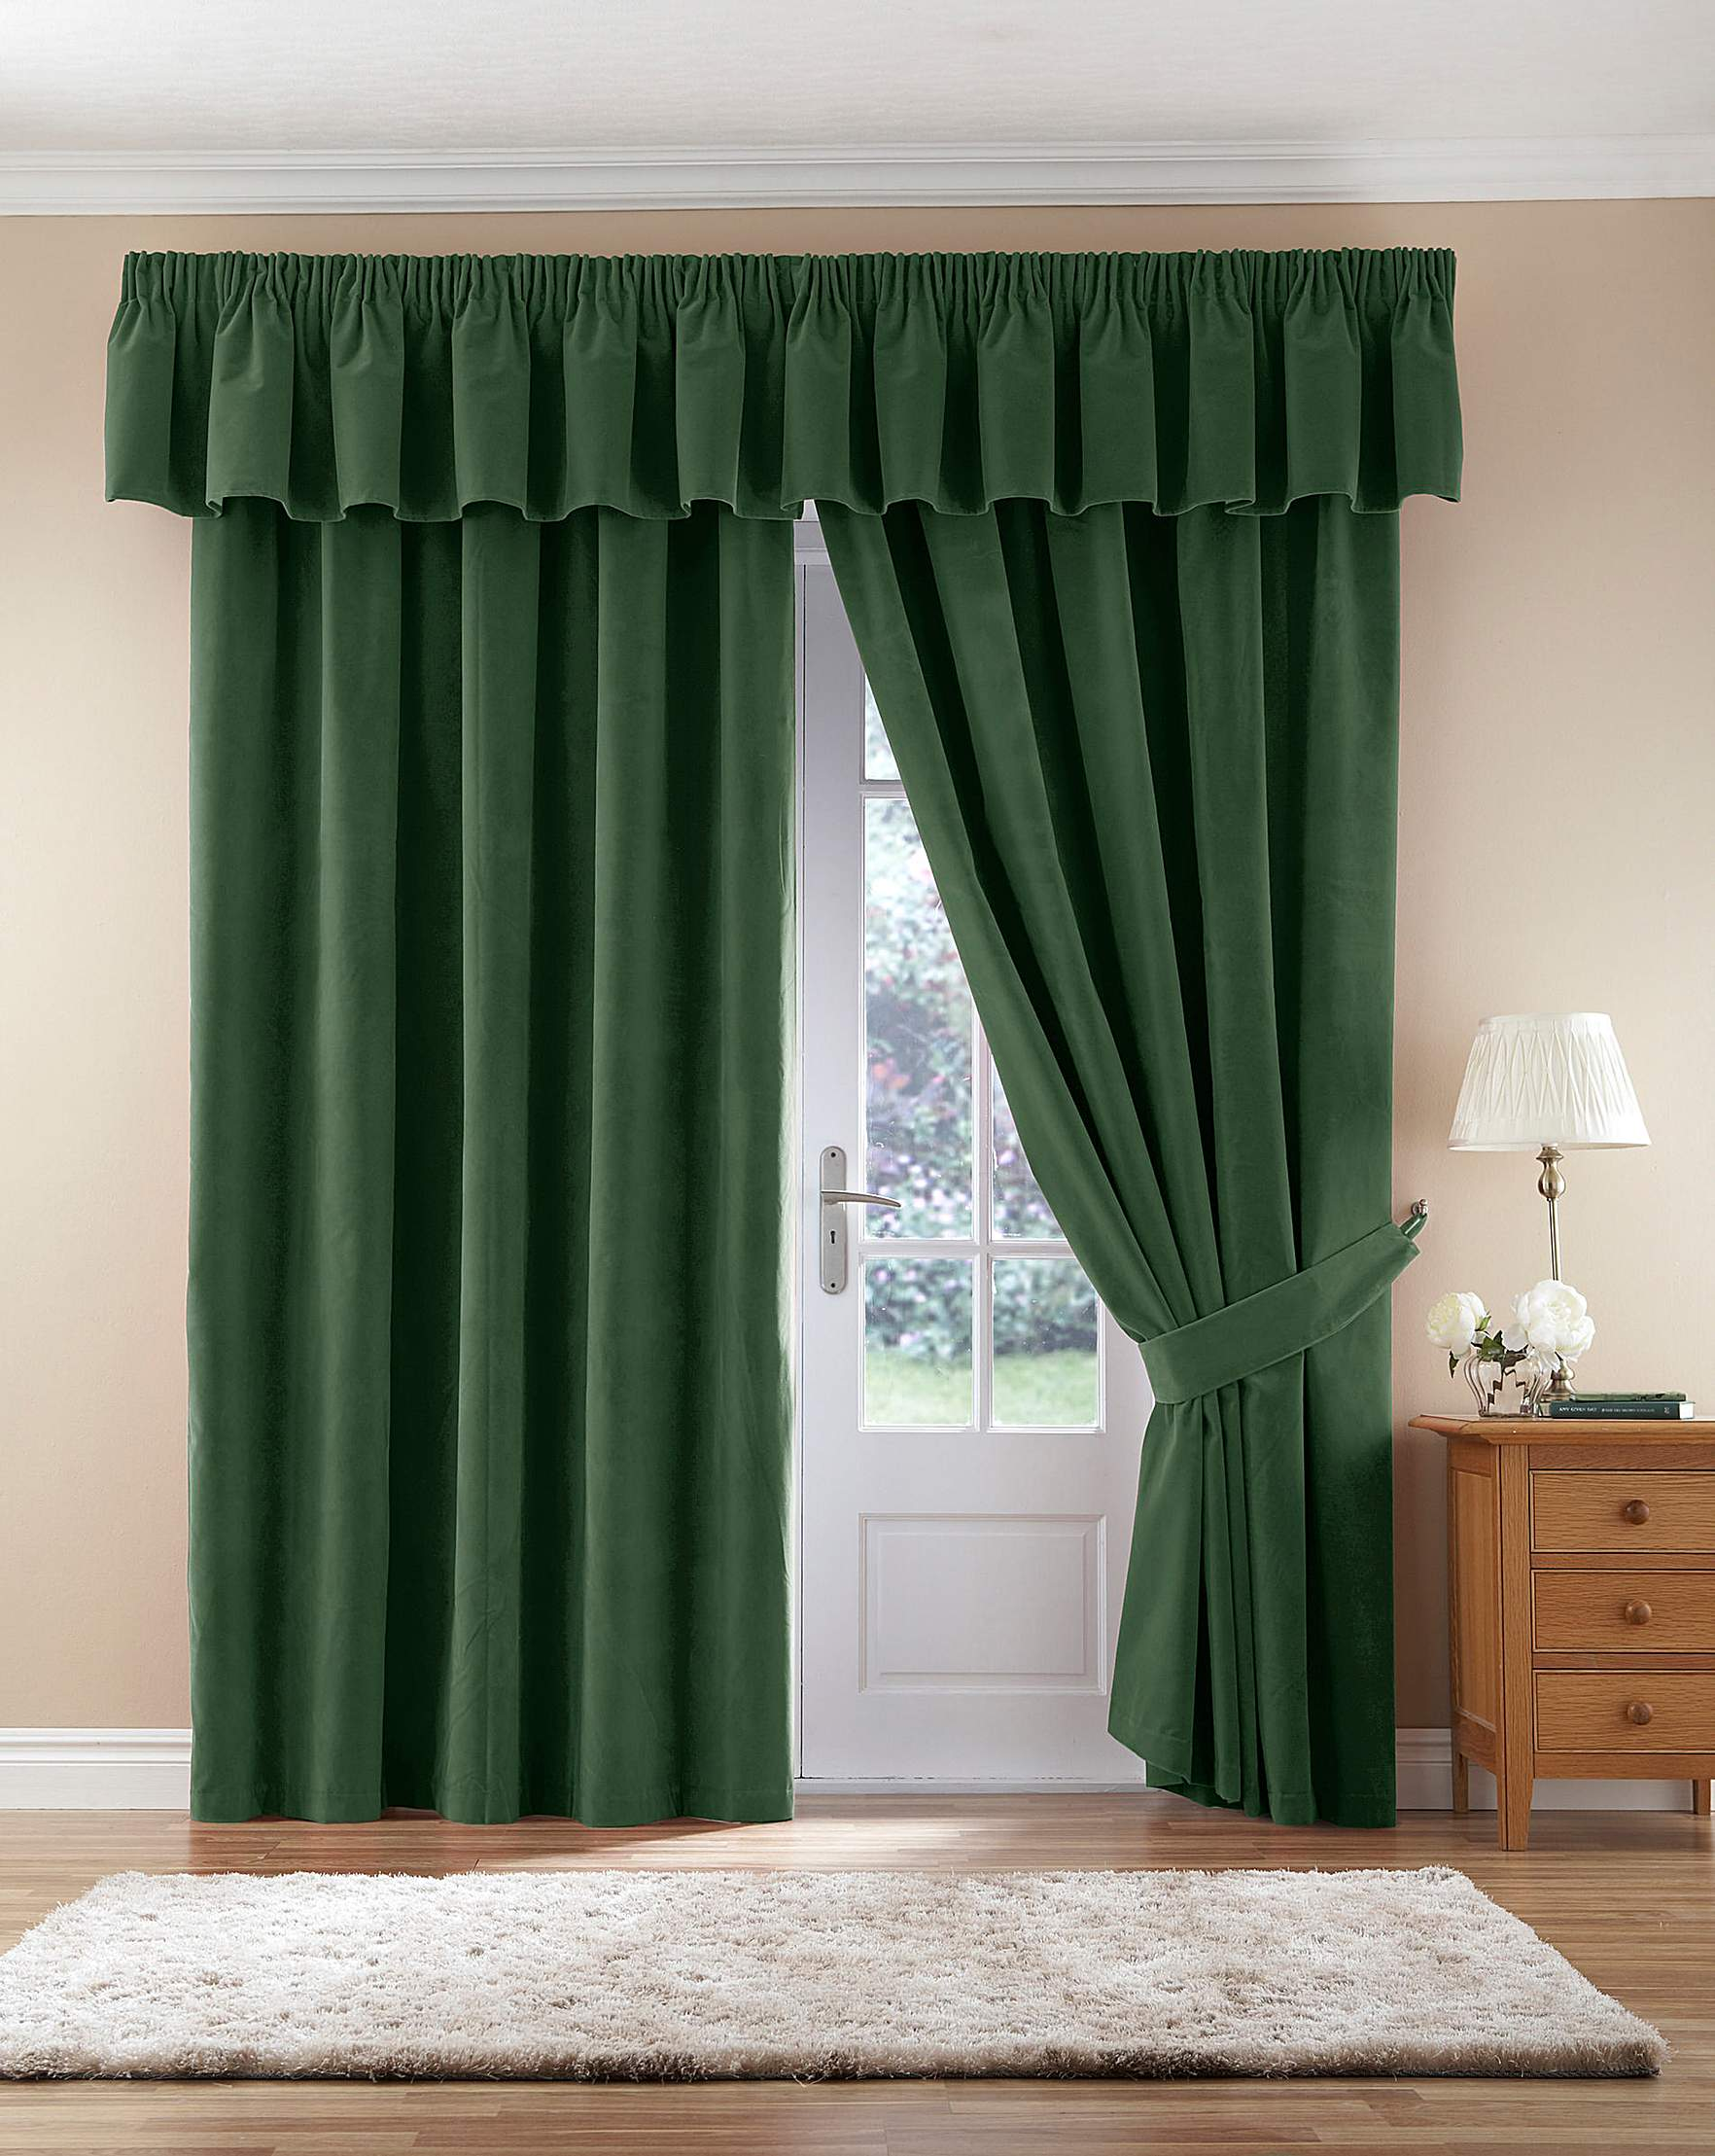 Thermal Velour Pencil Pleat Curtains | Premier Man for Pencil Pleat Curtains On Track  545xkb